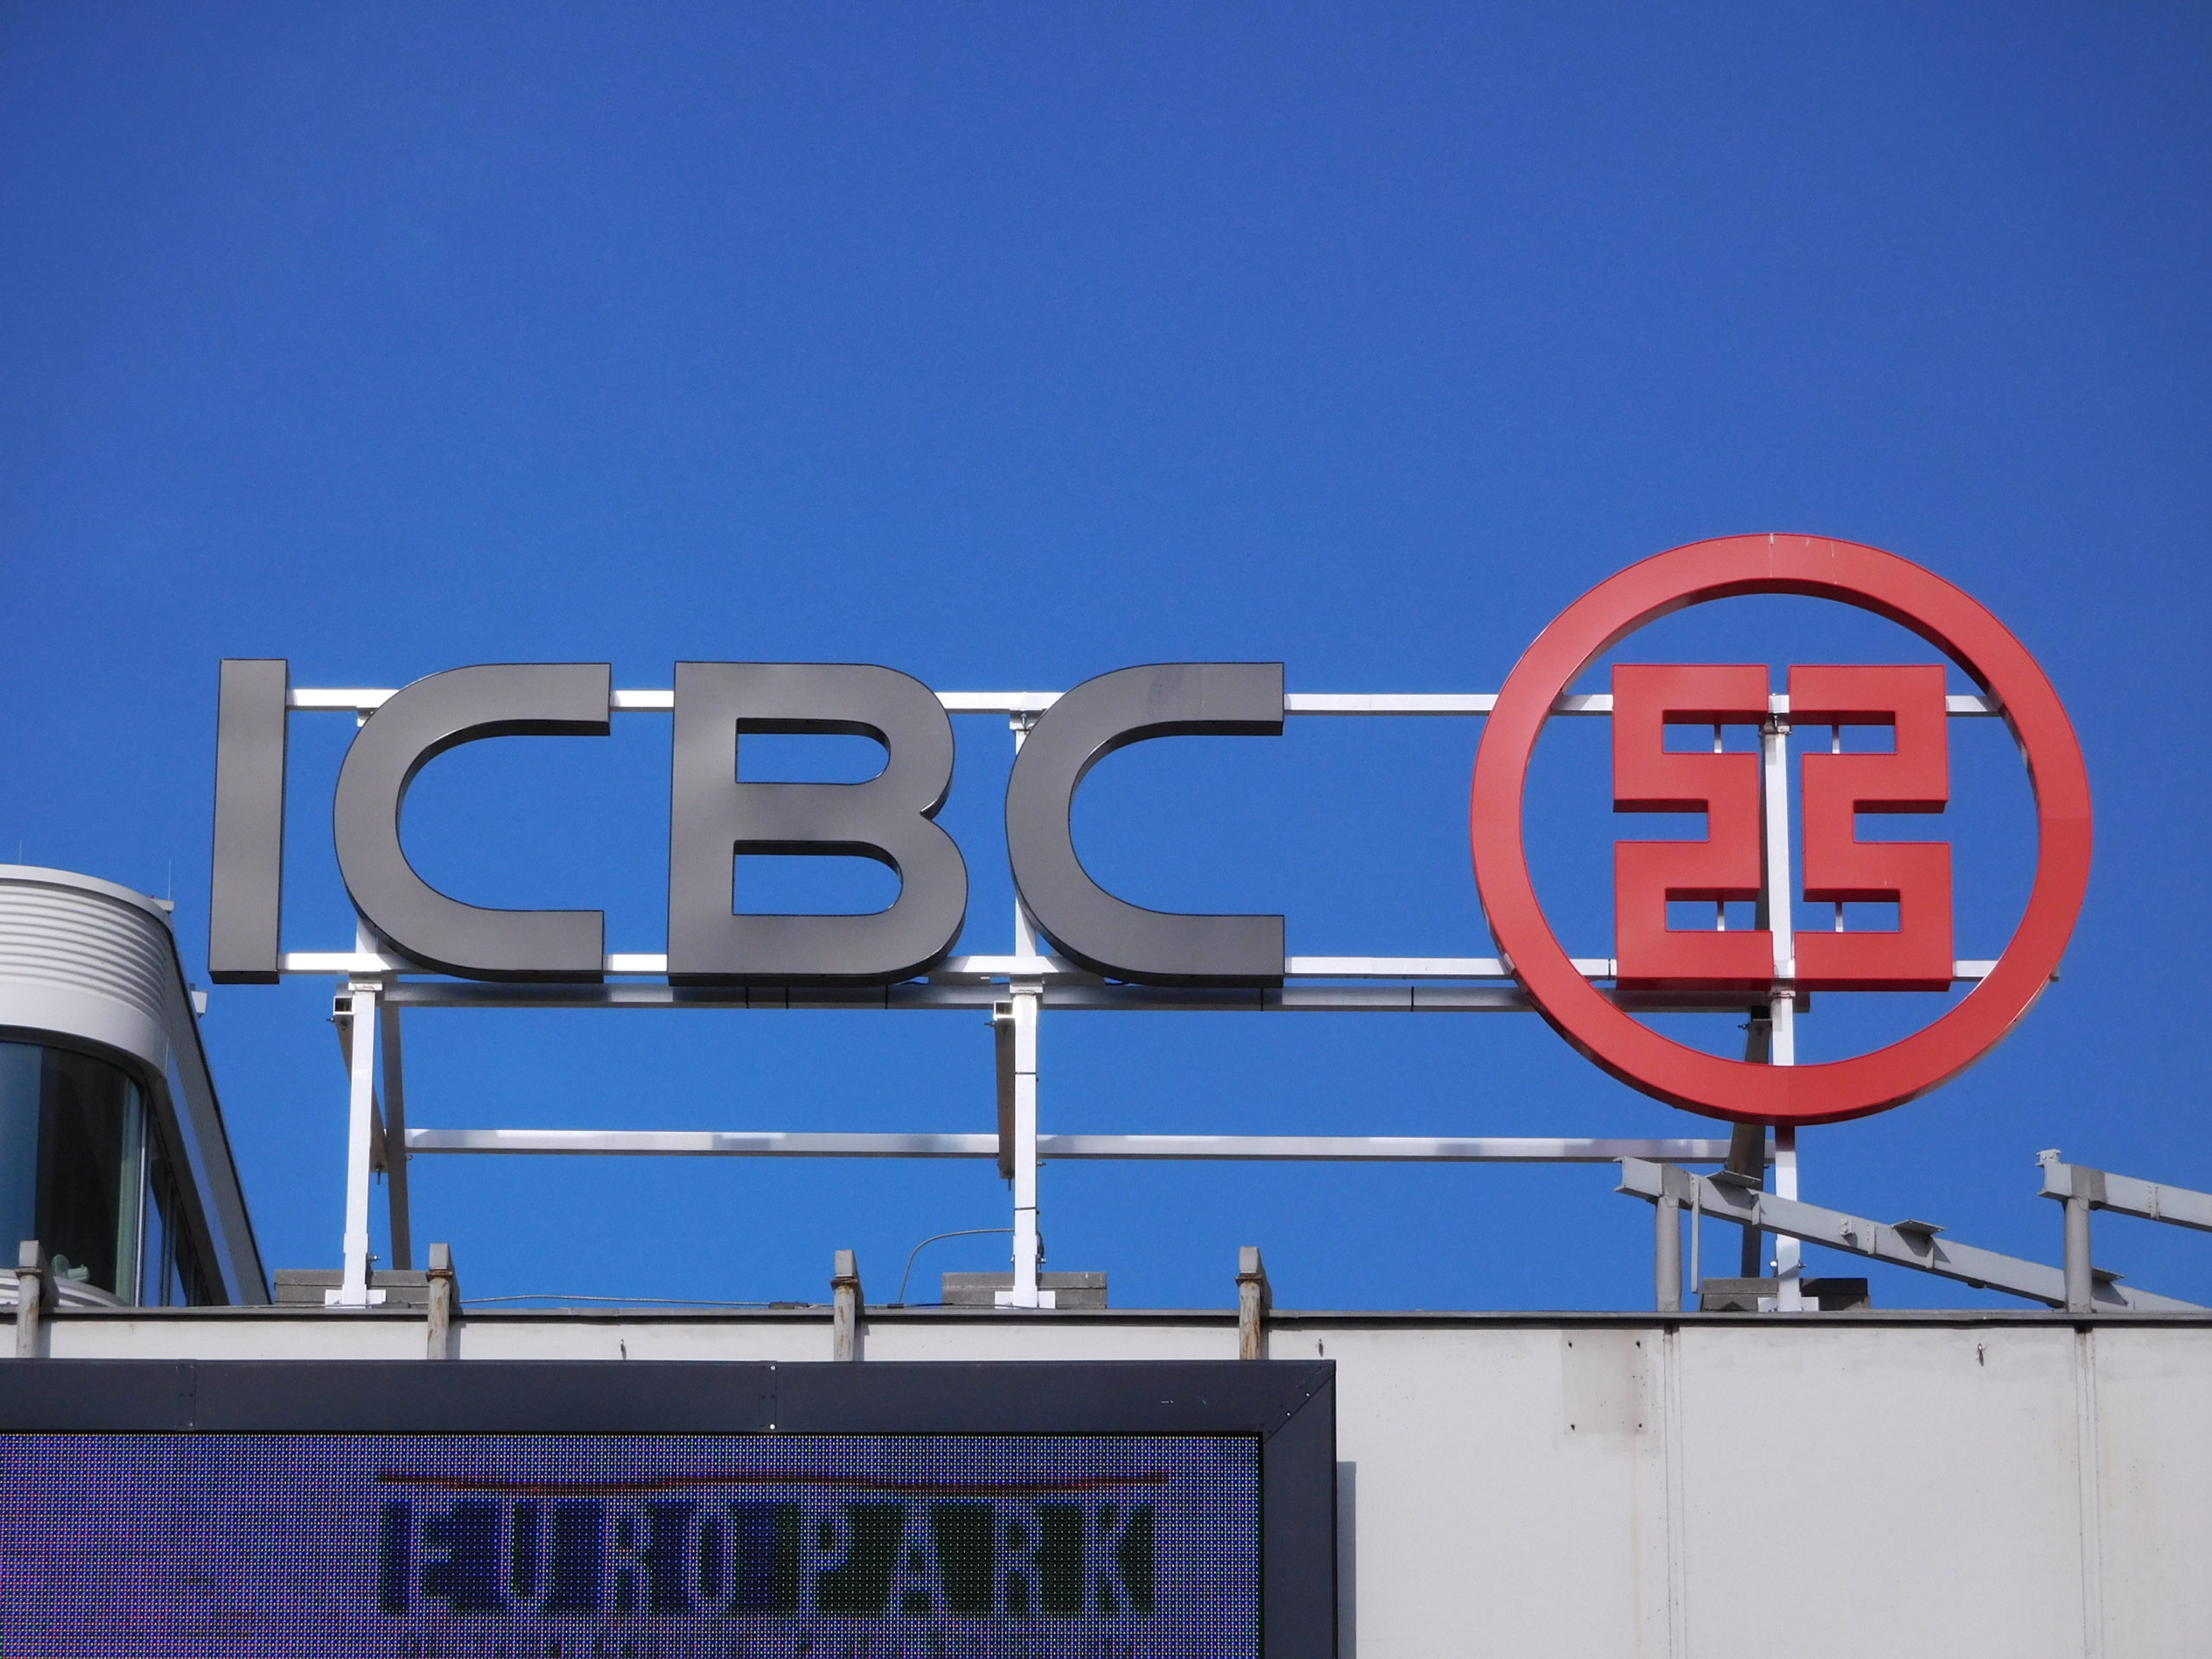 ICBC Wins Top Honours for Digital Banking from Global Finance Magazine